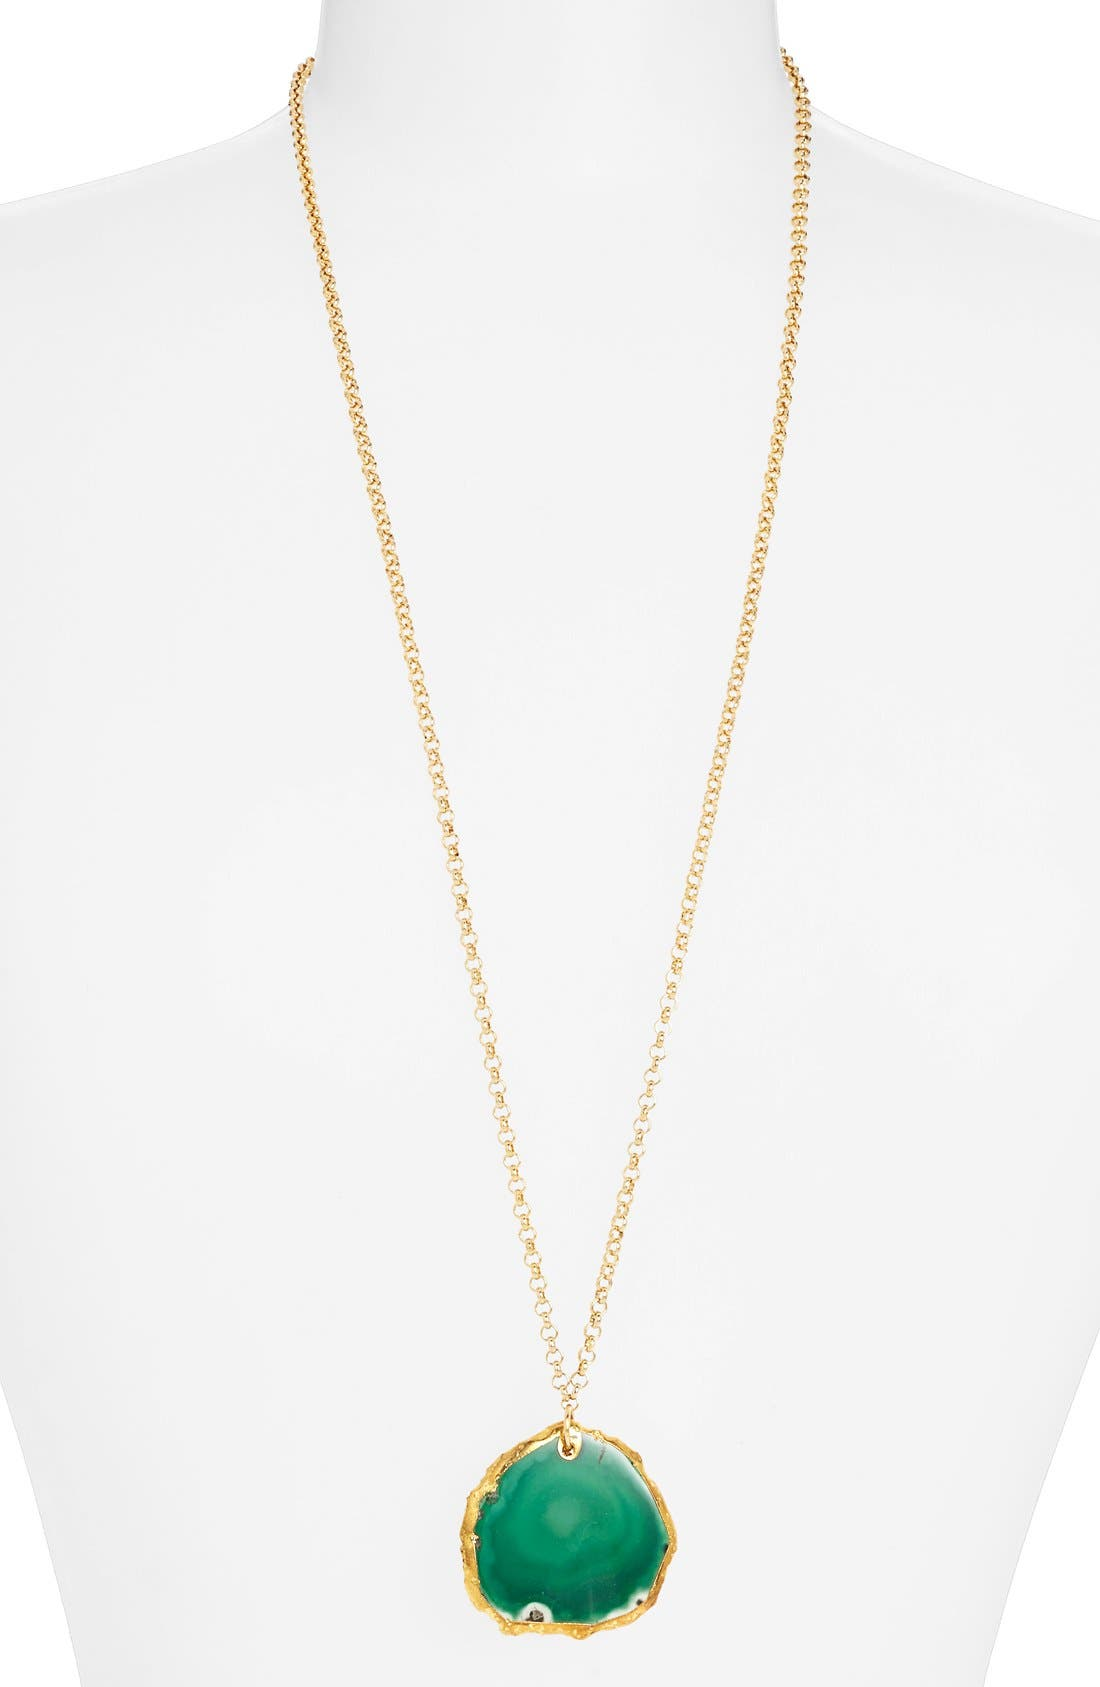 Main Image - Nordstrom 'Sorcerer's Stone' Long Pendant Necklace